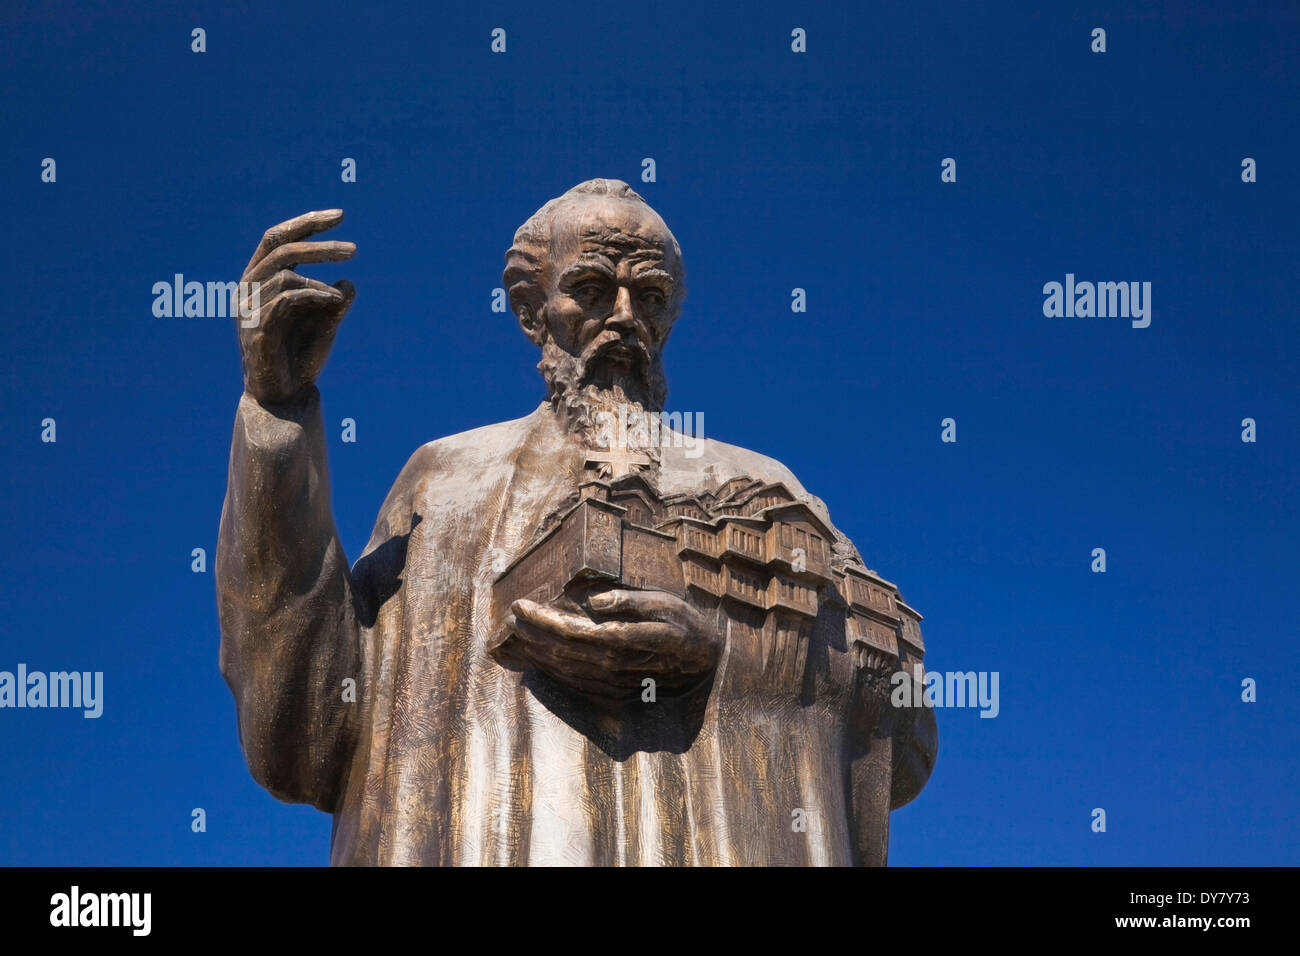 Bronze statue of St. Clement of Ohrid, Ohrid, Macedonia - Stock Image